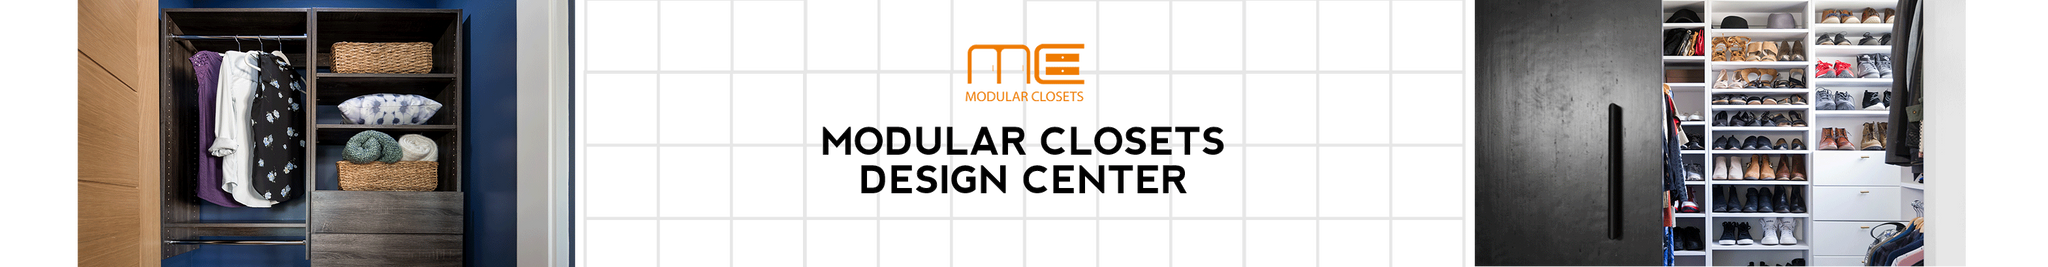 Free Modular Closets Design Center